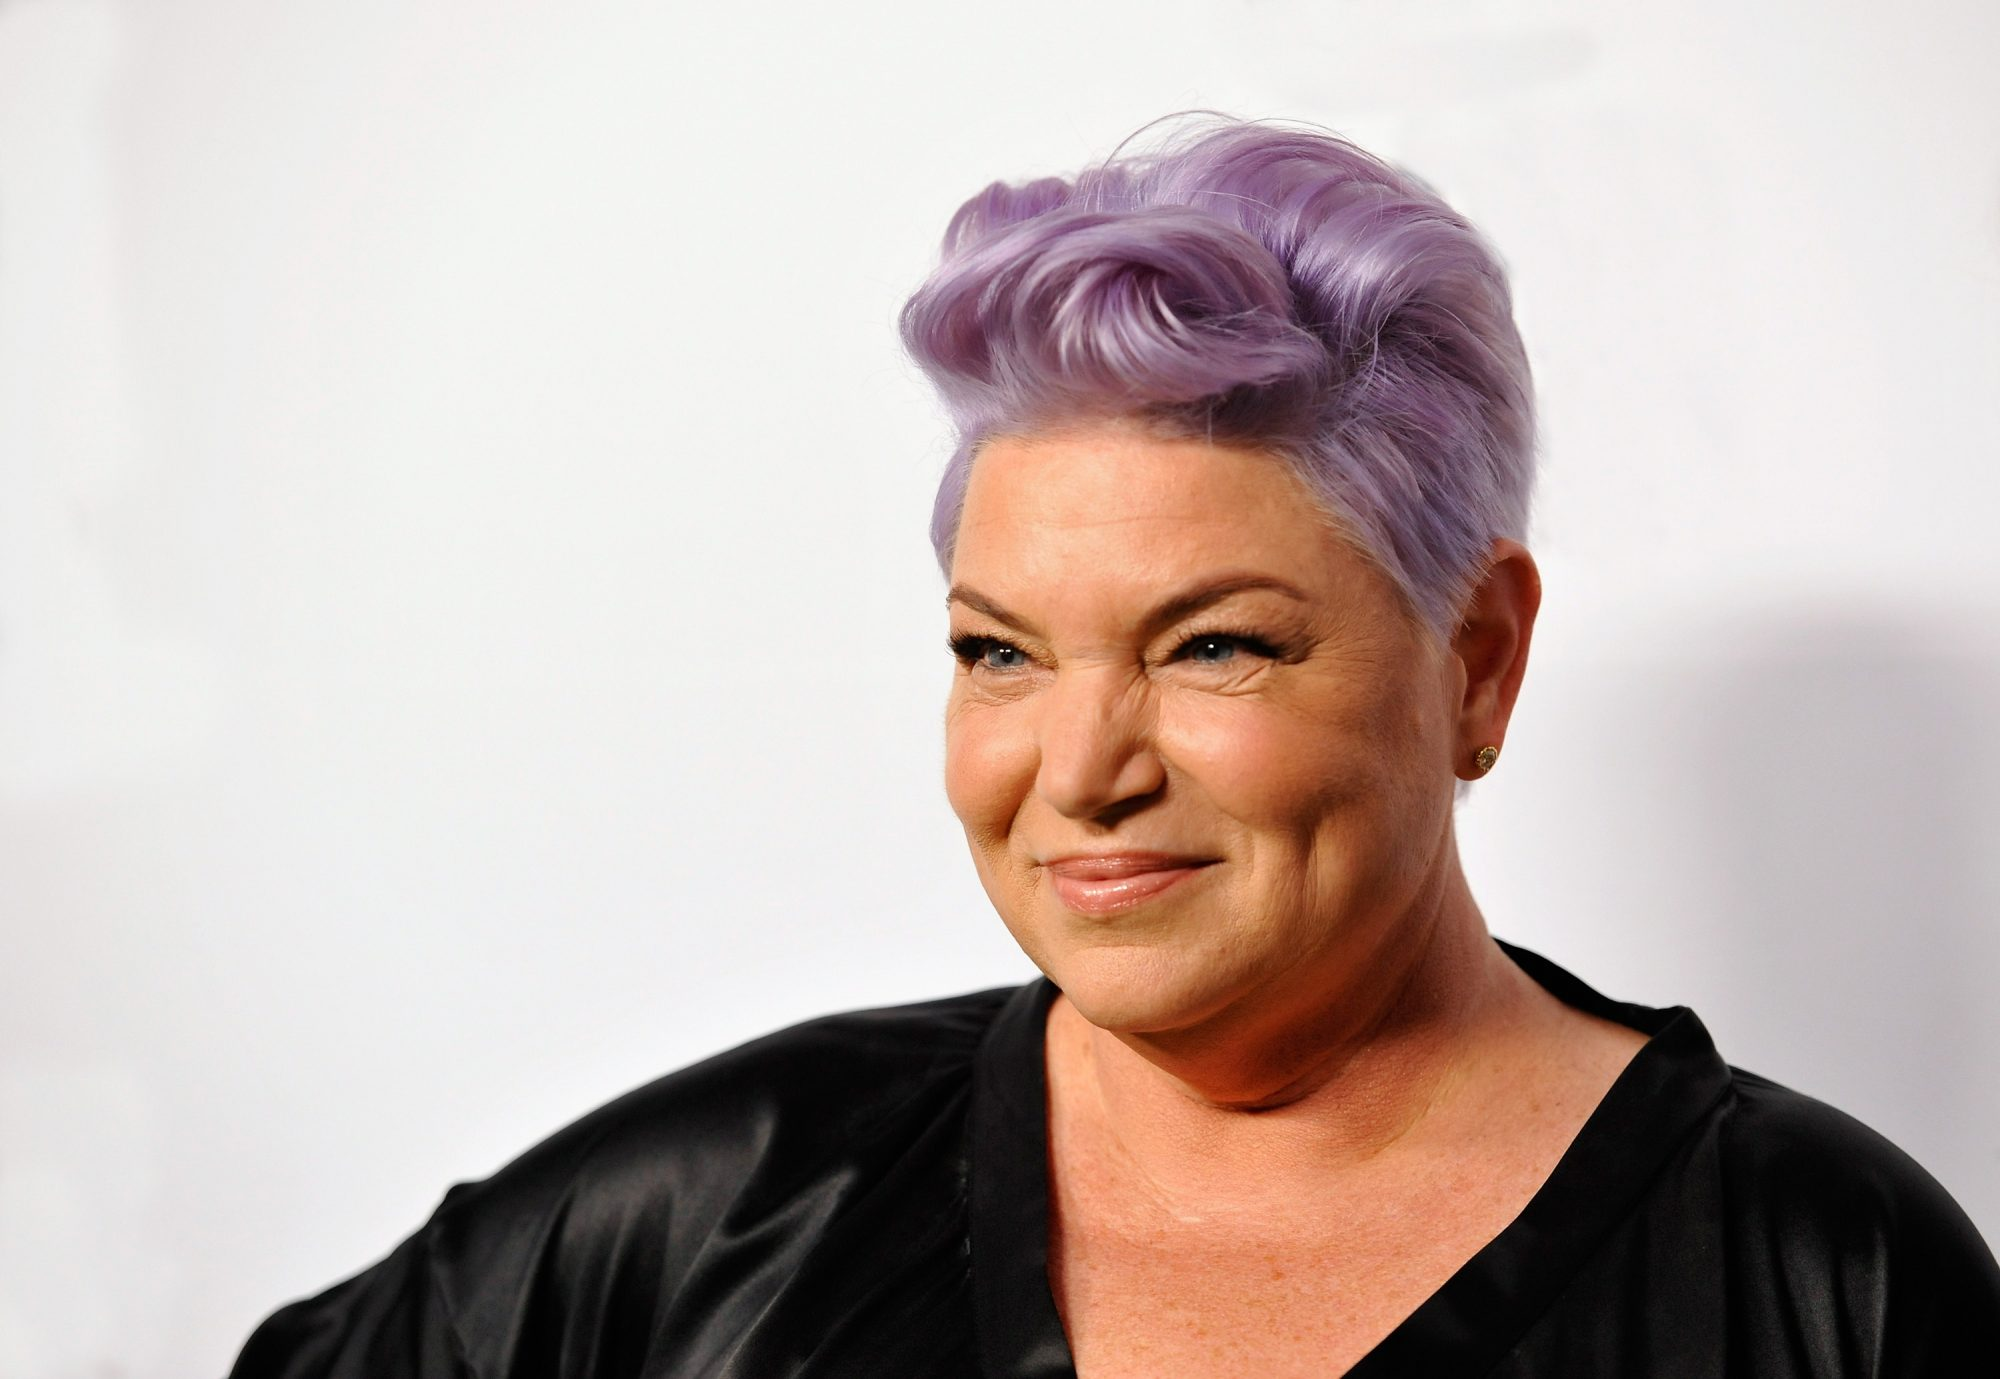 Facts of Life Star Mindy Cohn Poses Topless with Friends for Breast Cancer Awareness